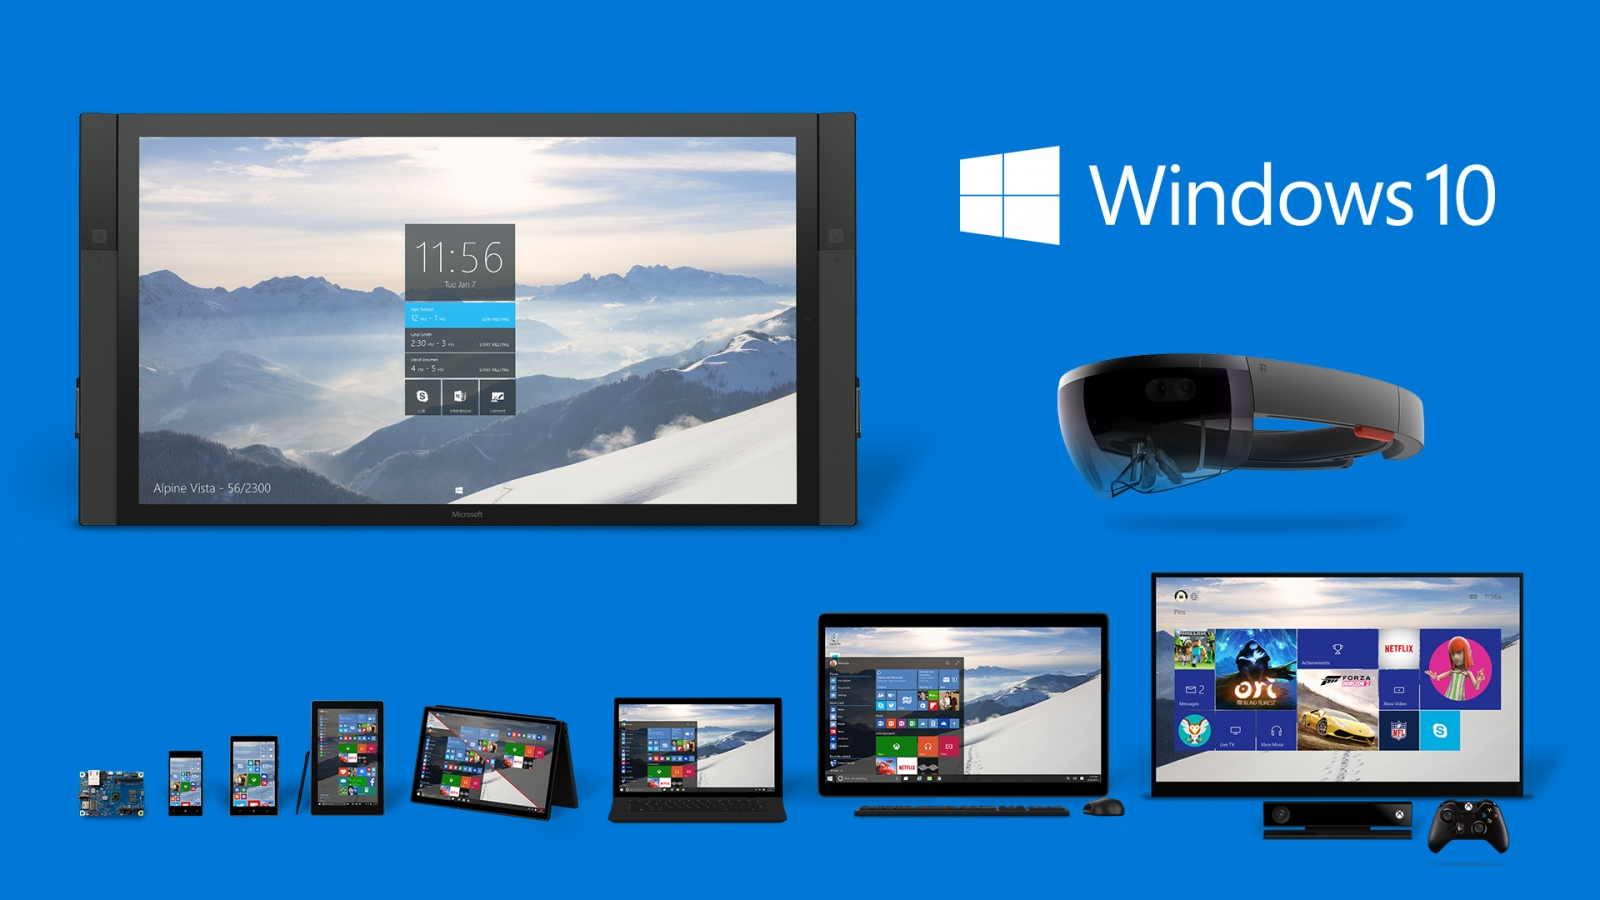 Newer Windows 10 devices having screen less than 8in will not get traditional desktops, states Joe Belfiore